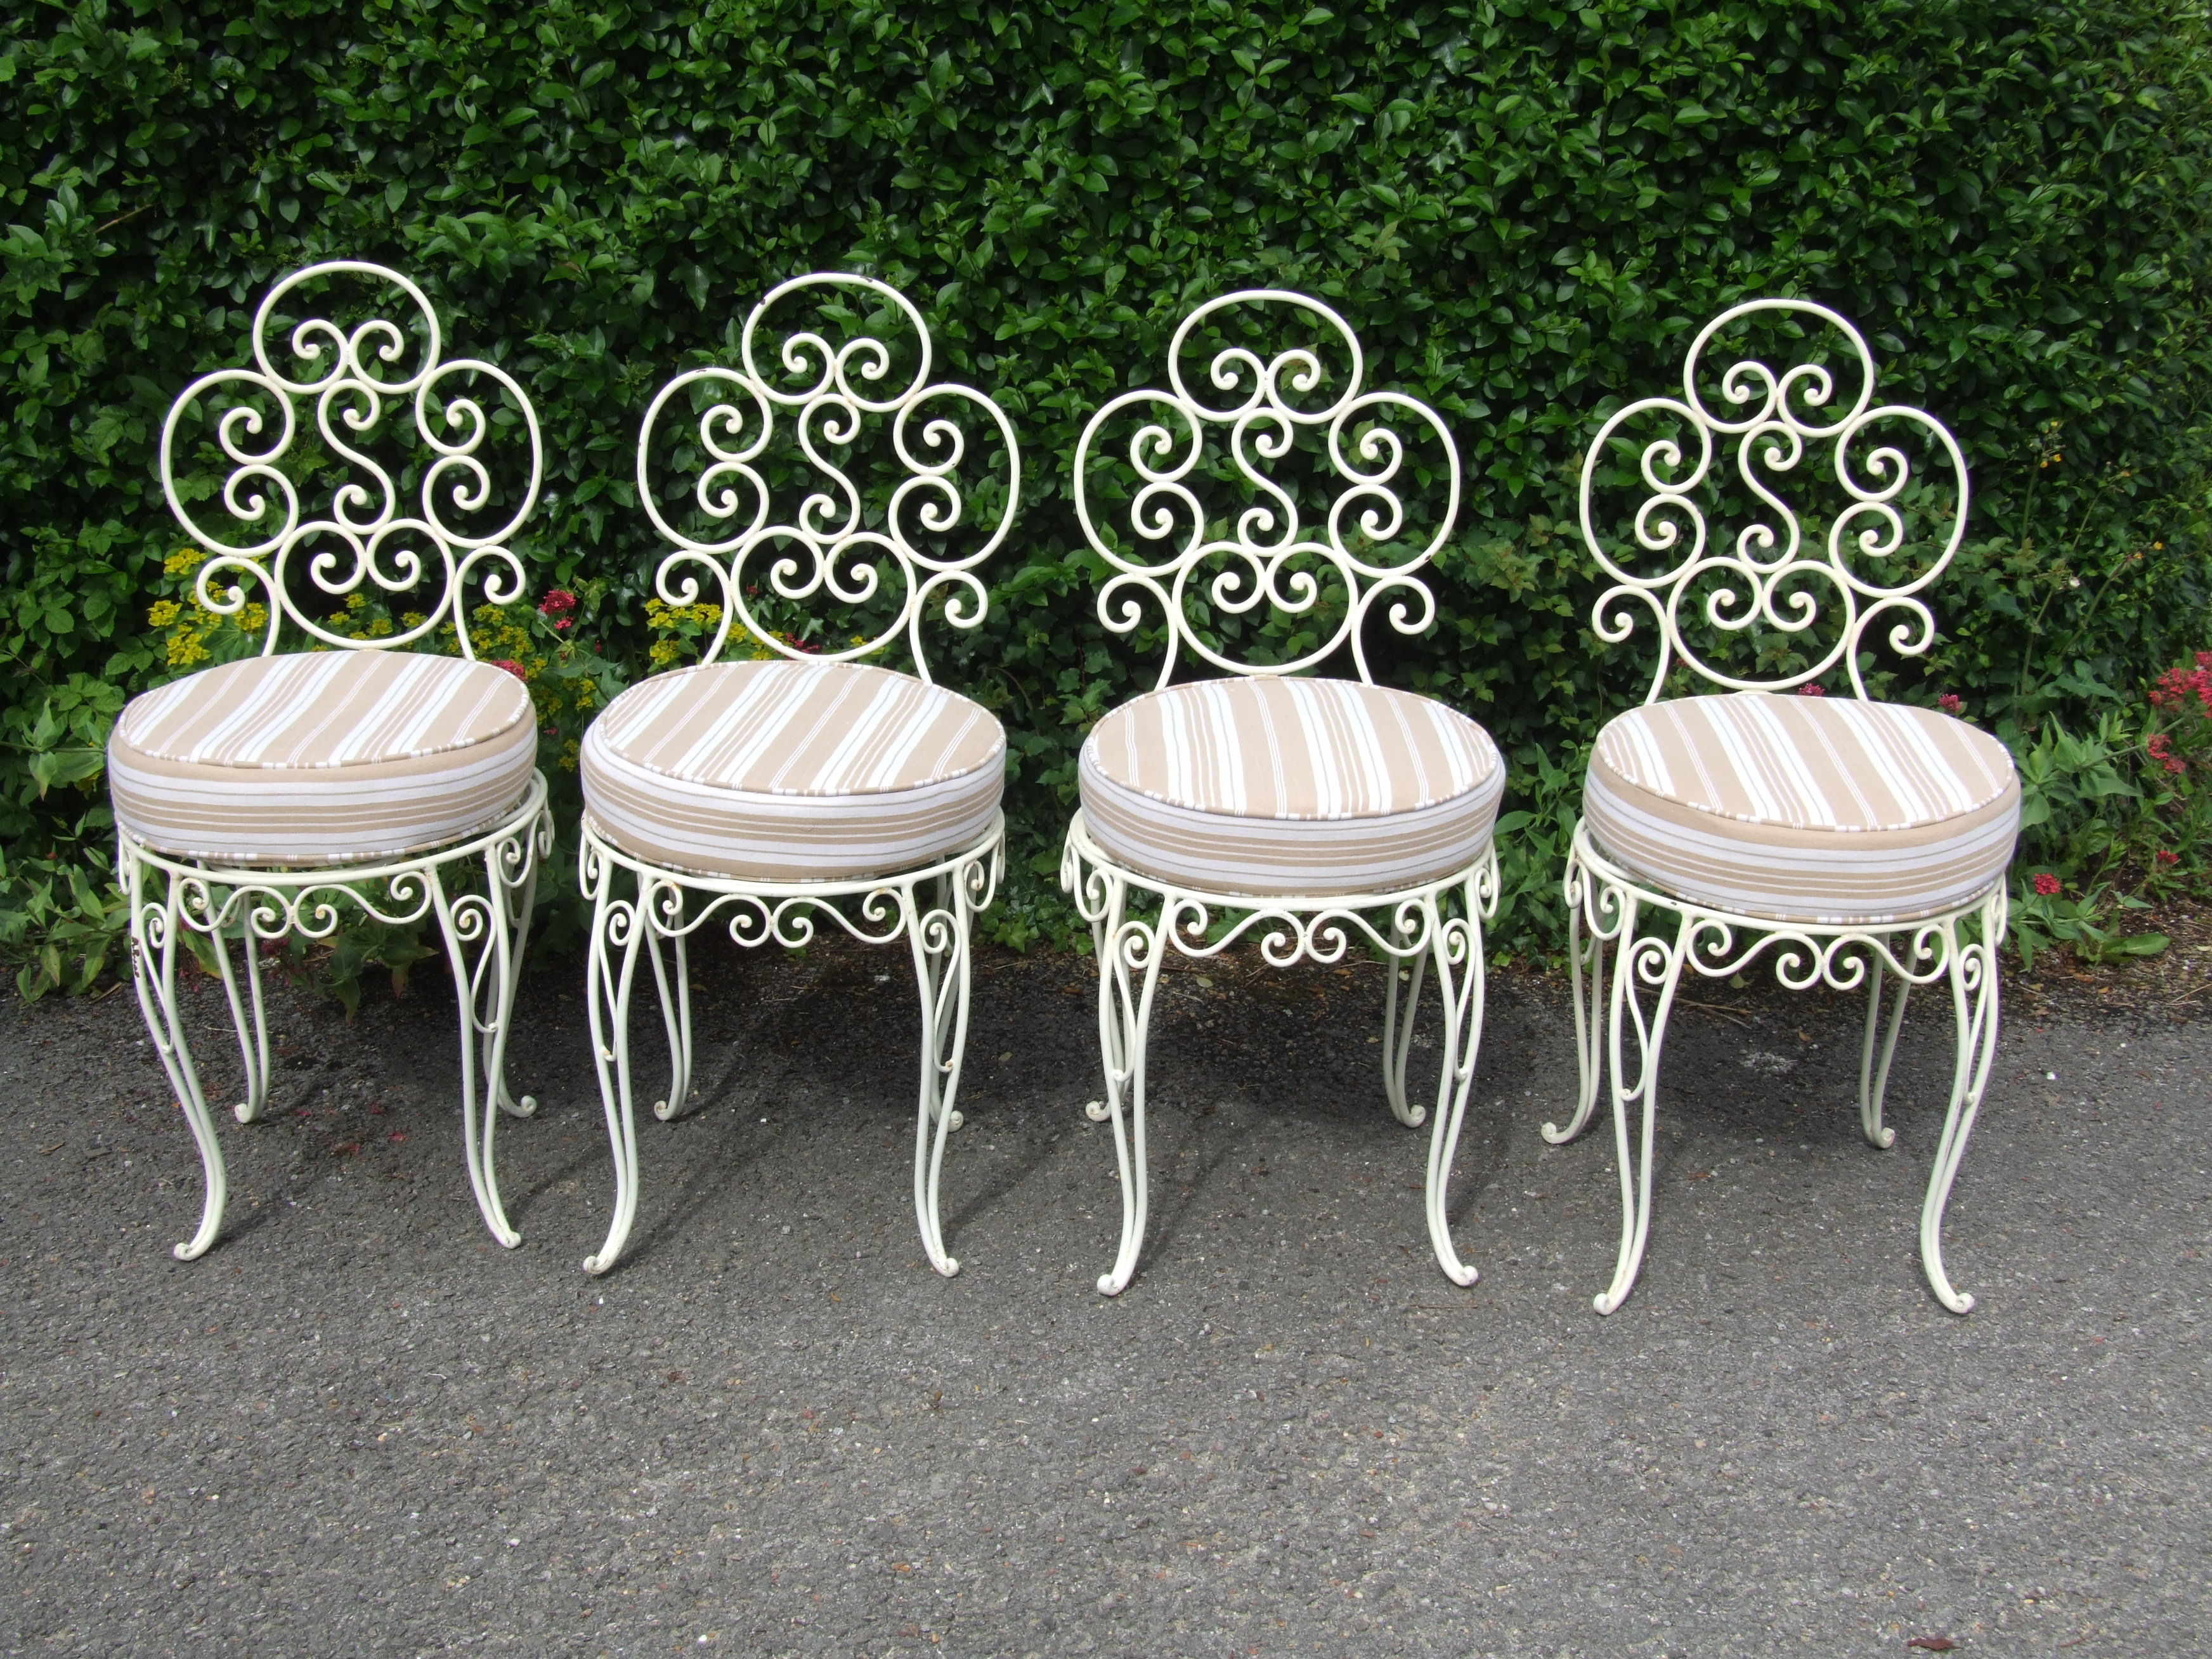 G175 S Vintage French Wrought Iron Conservatory Patio Café